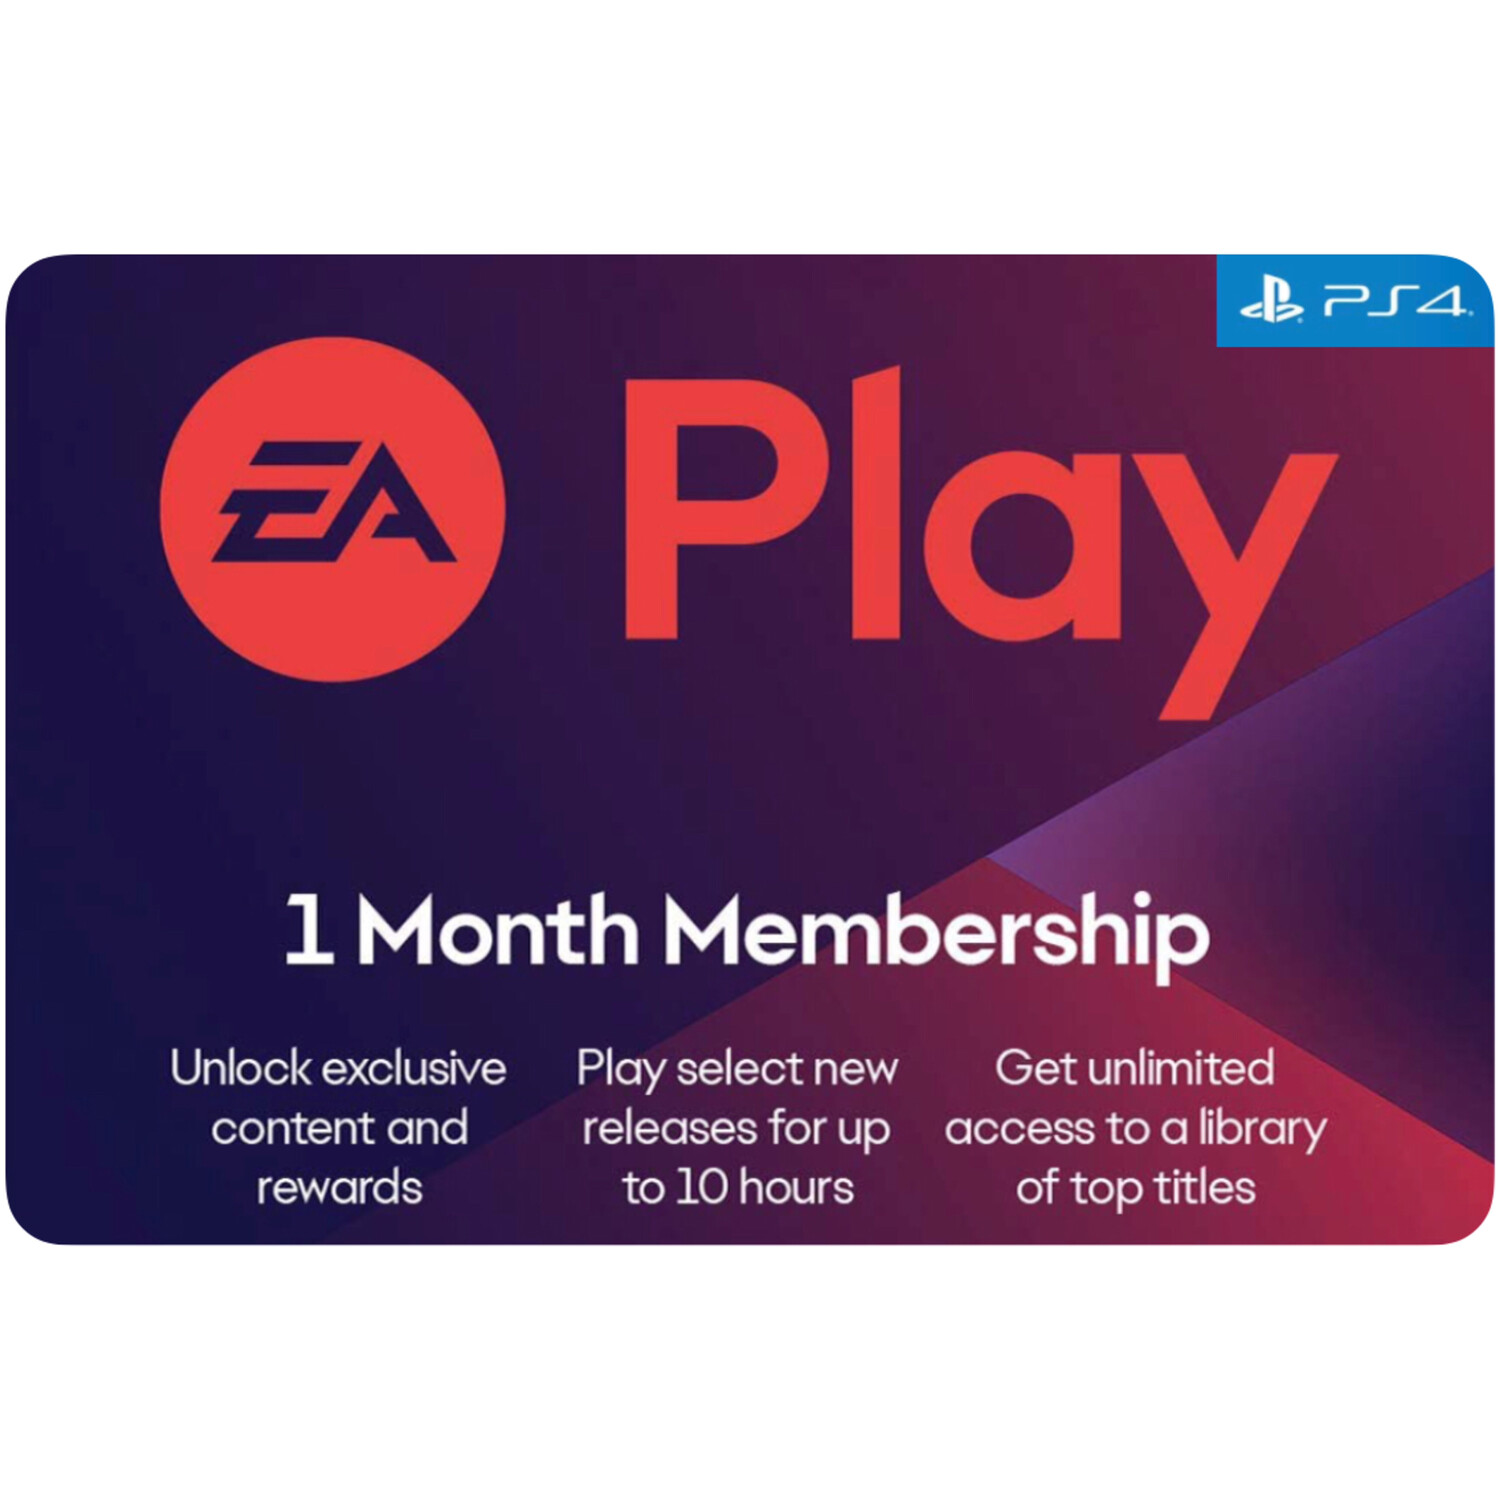 EA Play 1 Month Membership US for PS4 (EA Access)